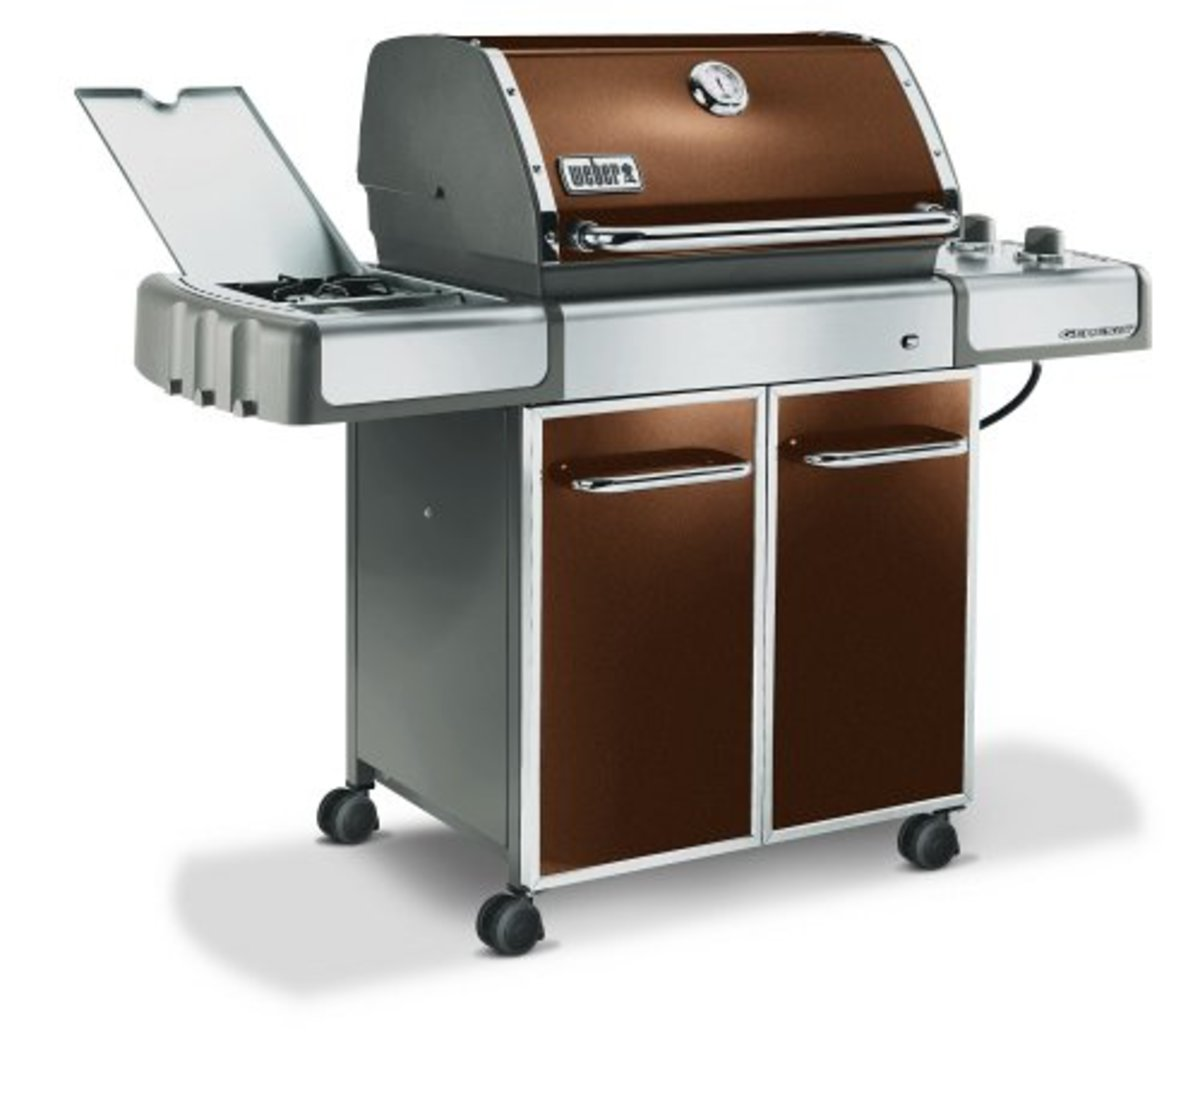 Weber Genesis EP-320 Gas Grill